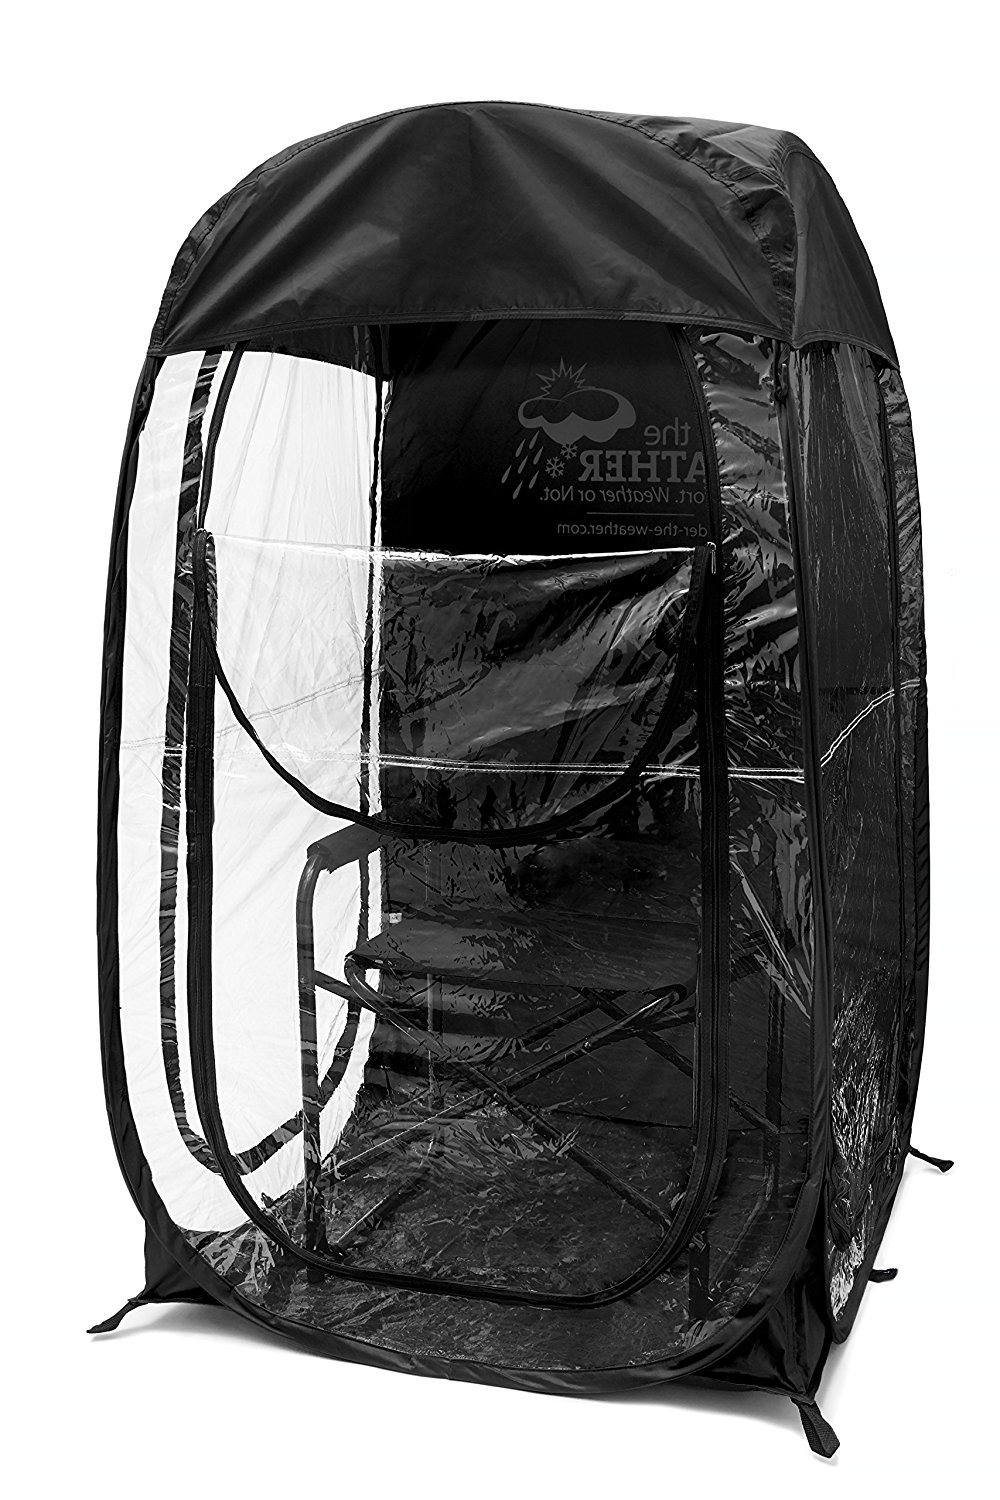 Under the Weather MyPod Sports Pod Black